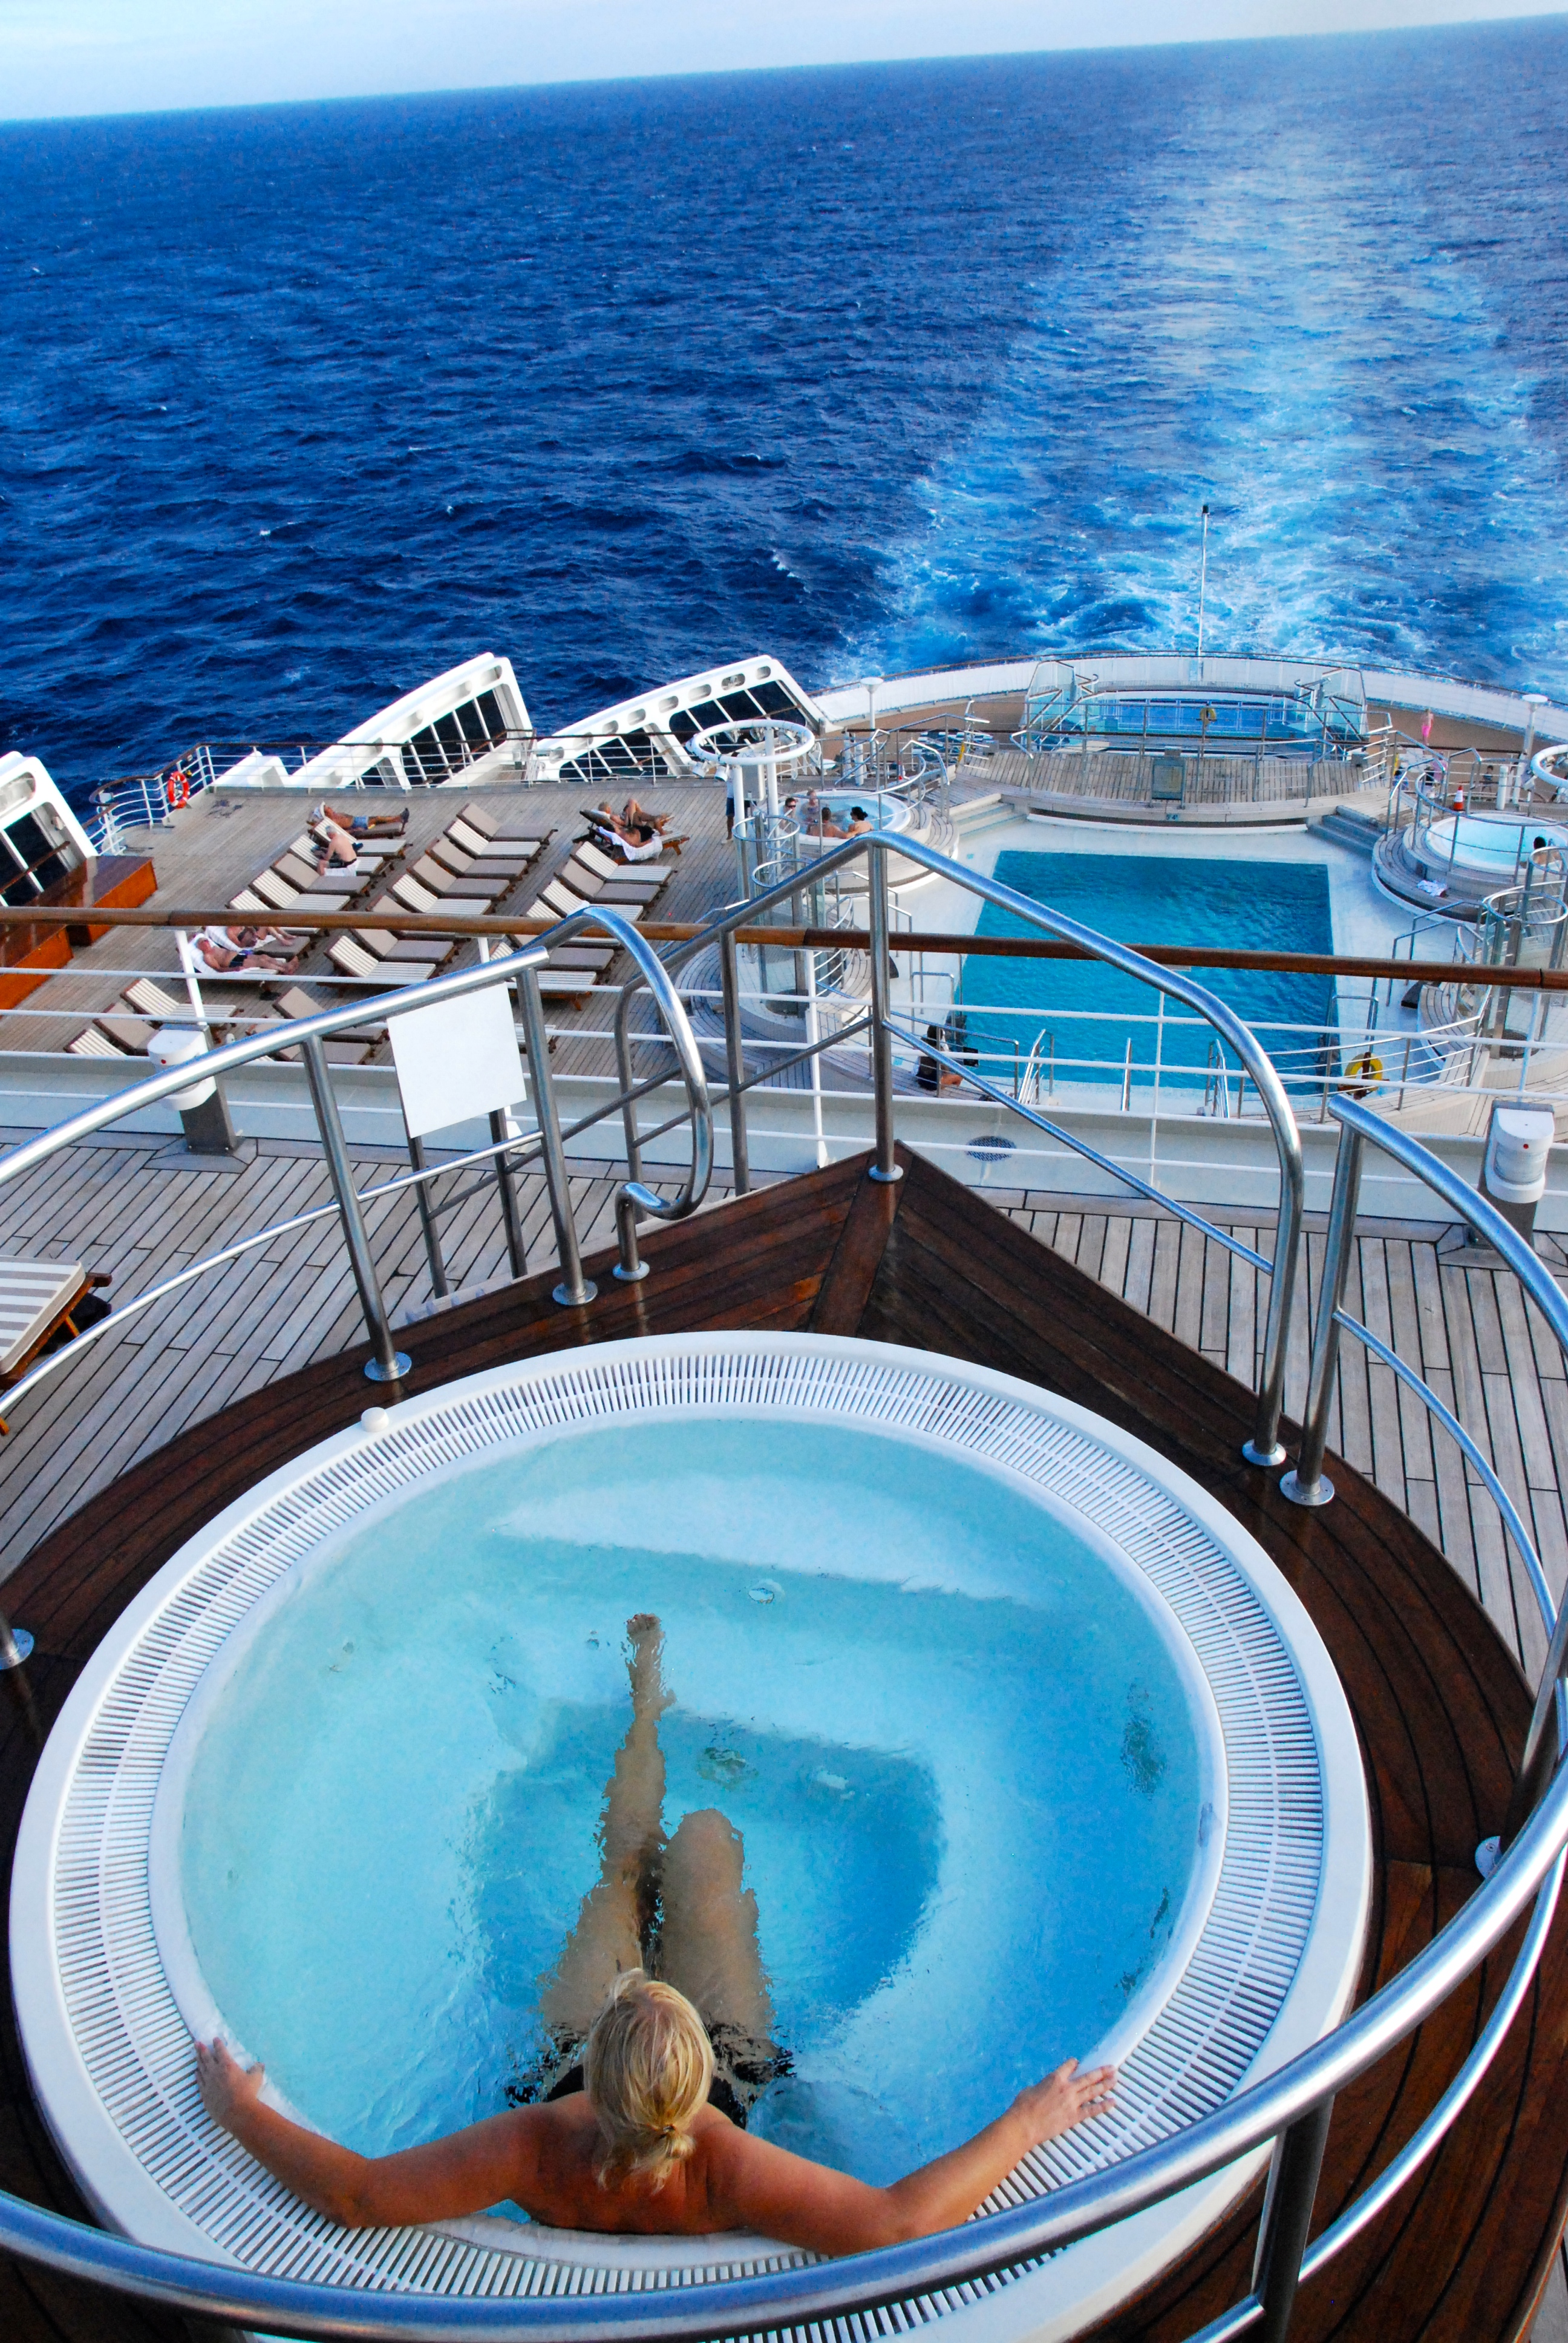 Coastal cruising on queen mary 2 a glass half full - Queen mary swimming pool victoria ...